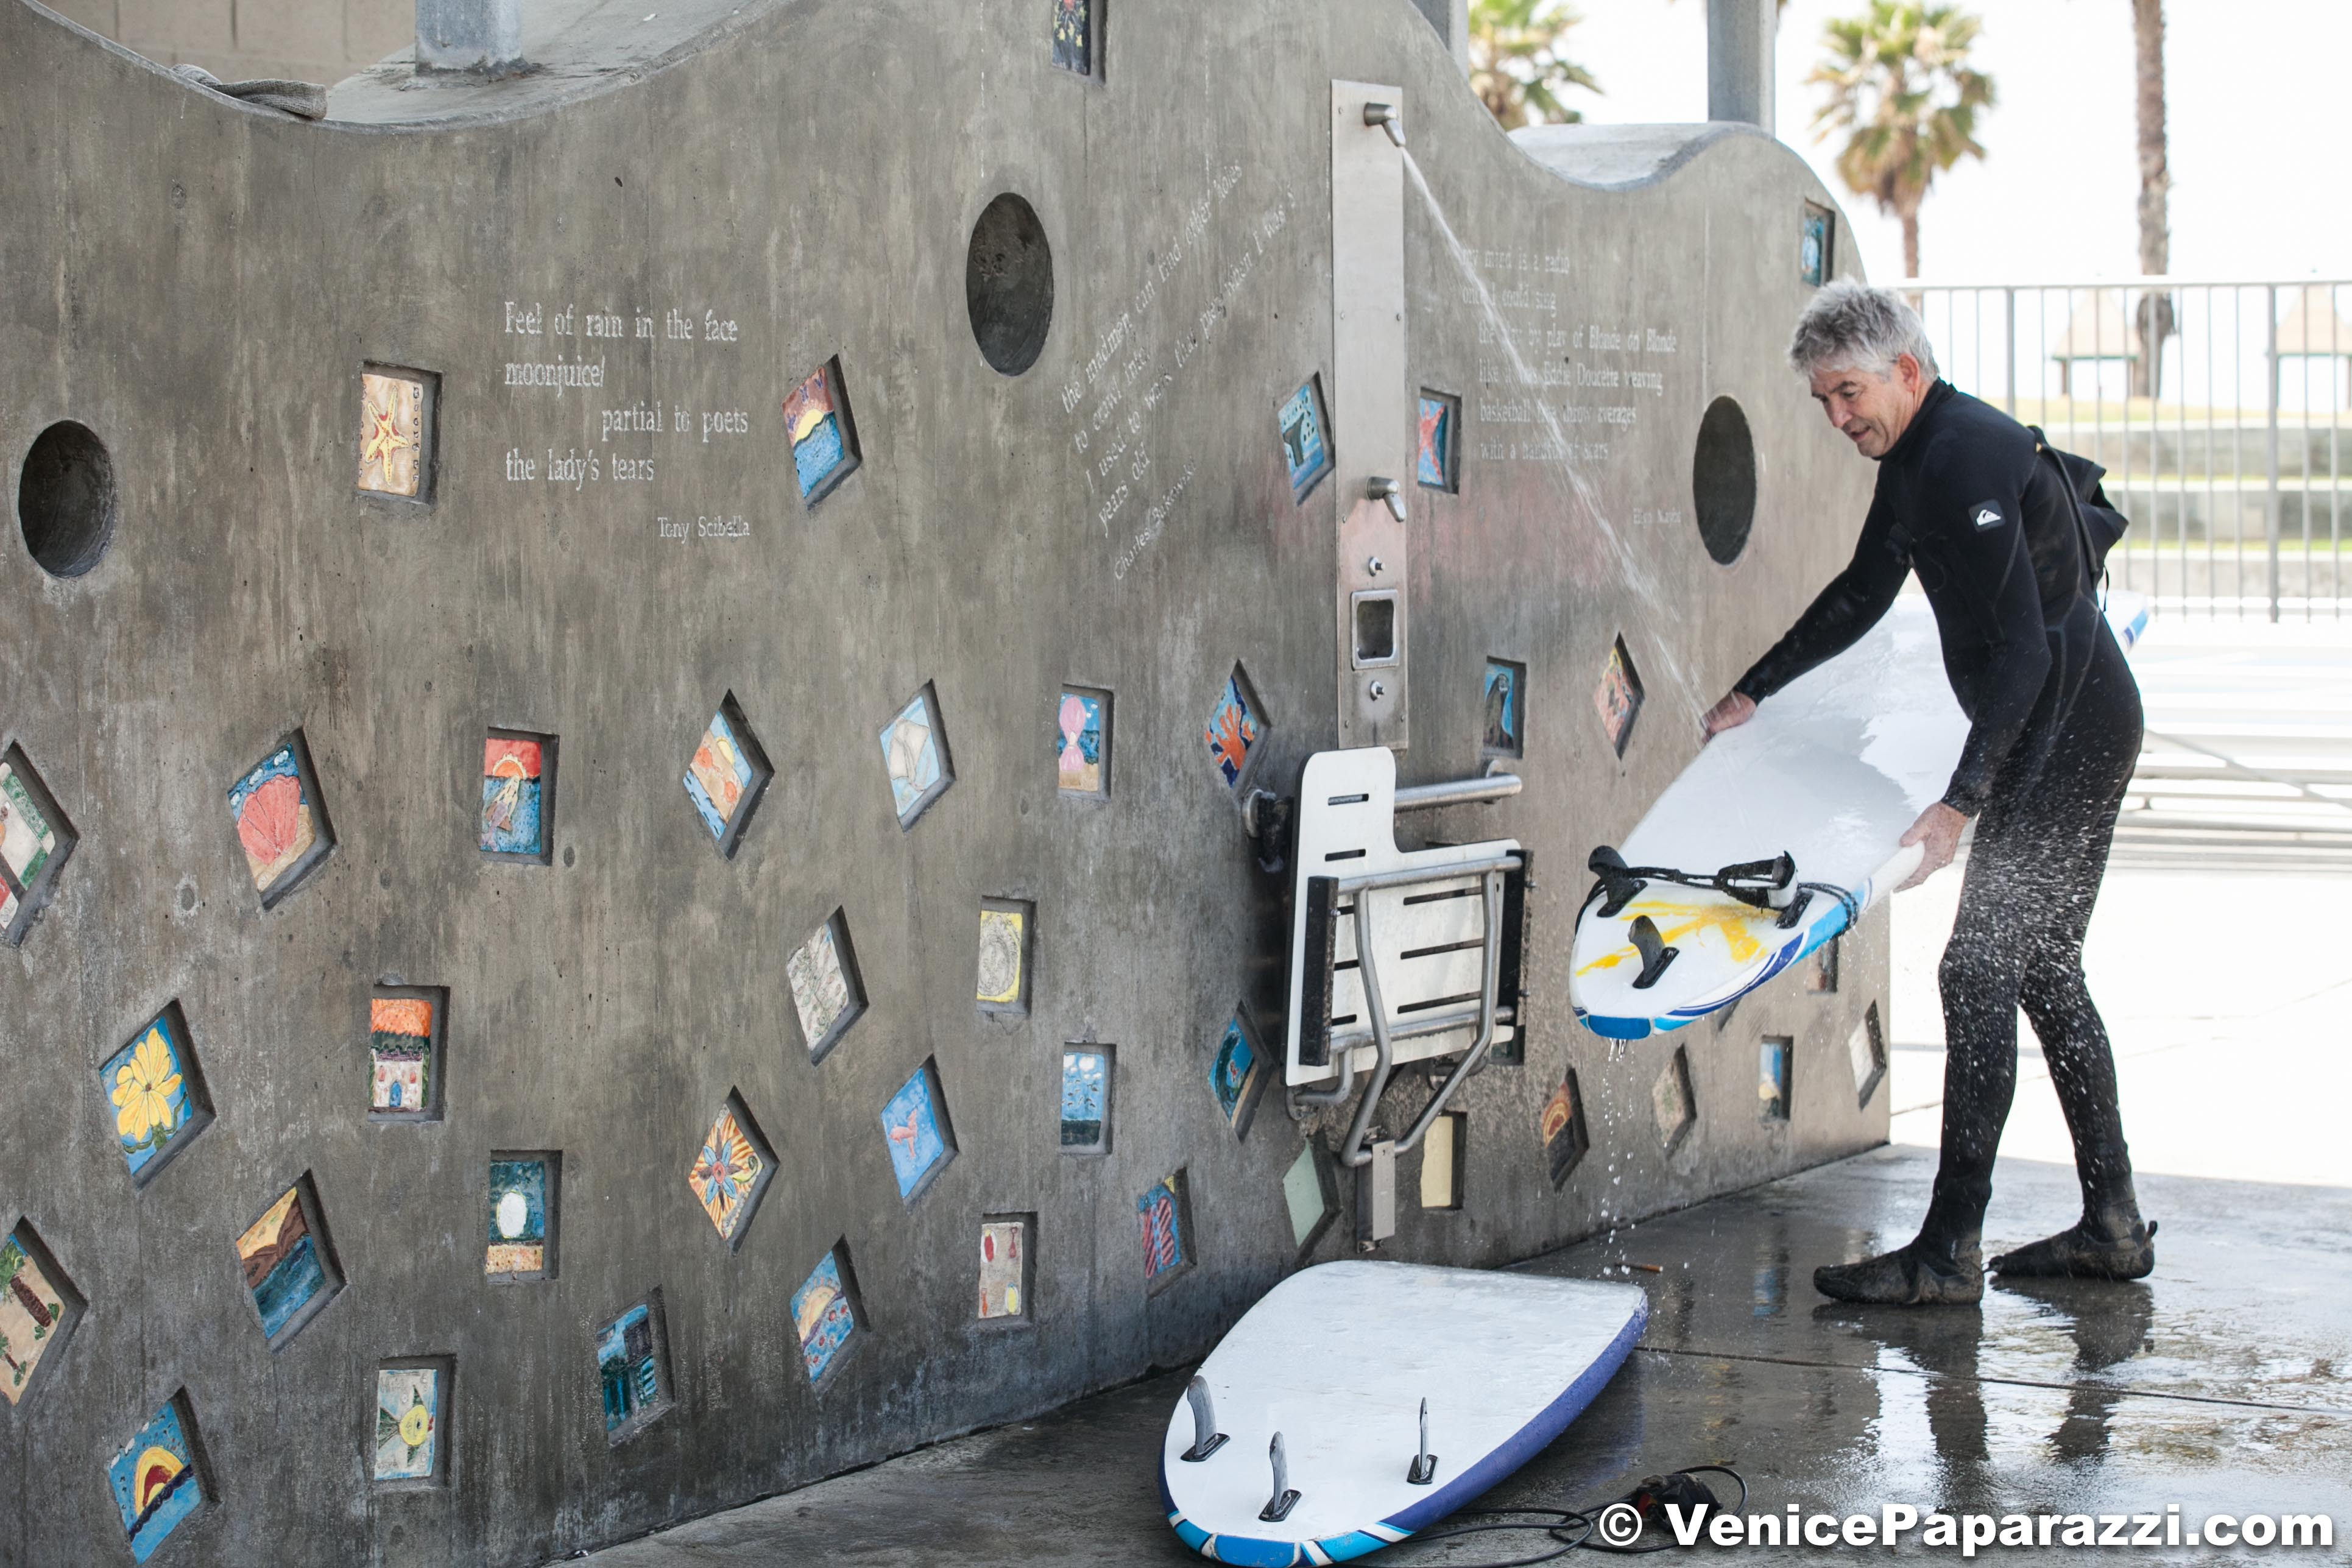 The Venice Beach Poet S Monument Includes Main Wall Located On Recreation And Parks Lapd Substation Building Three Public